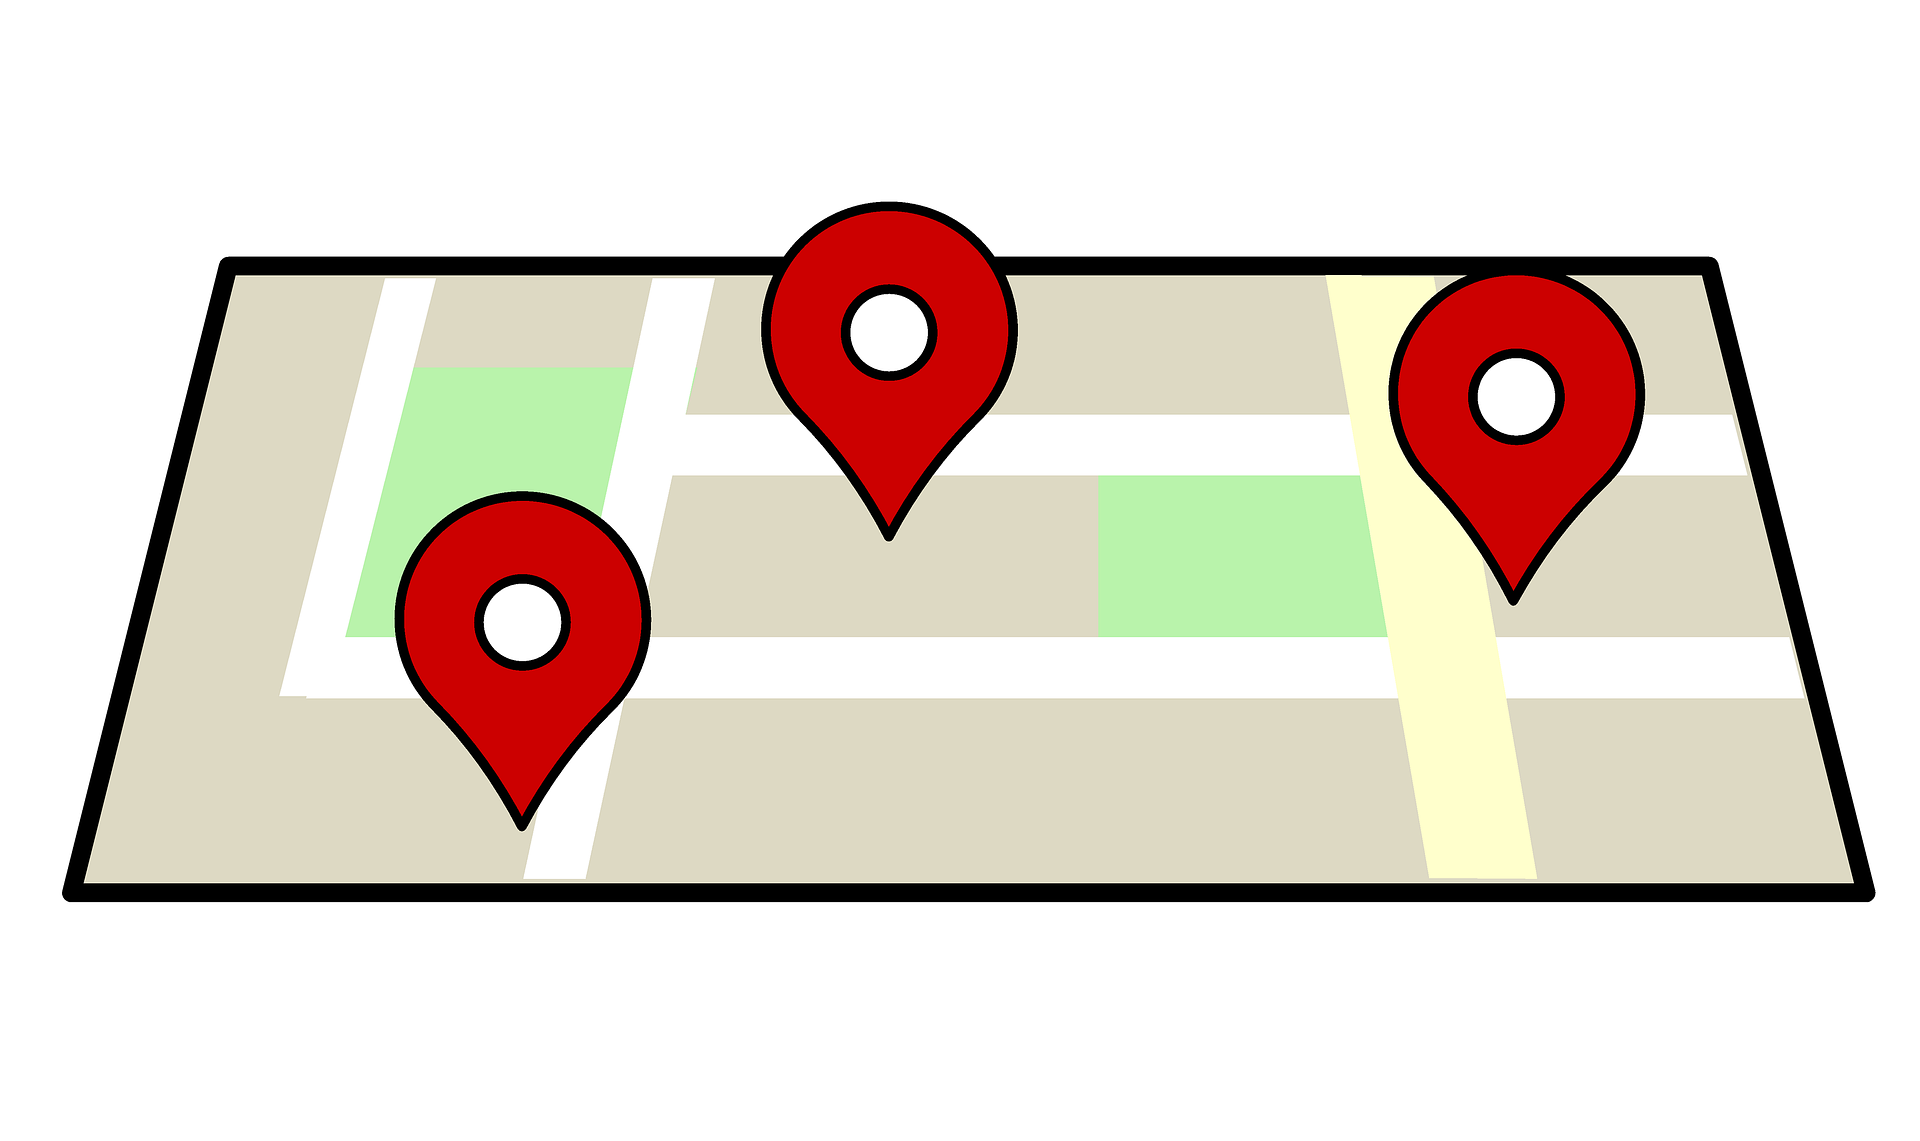 map-525349_1920.png